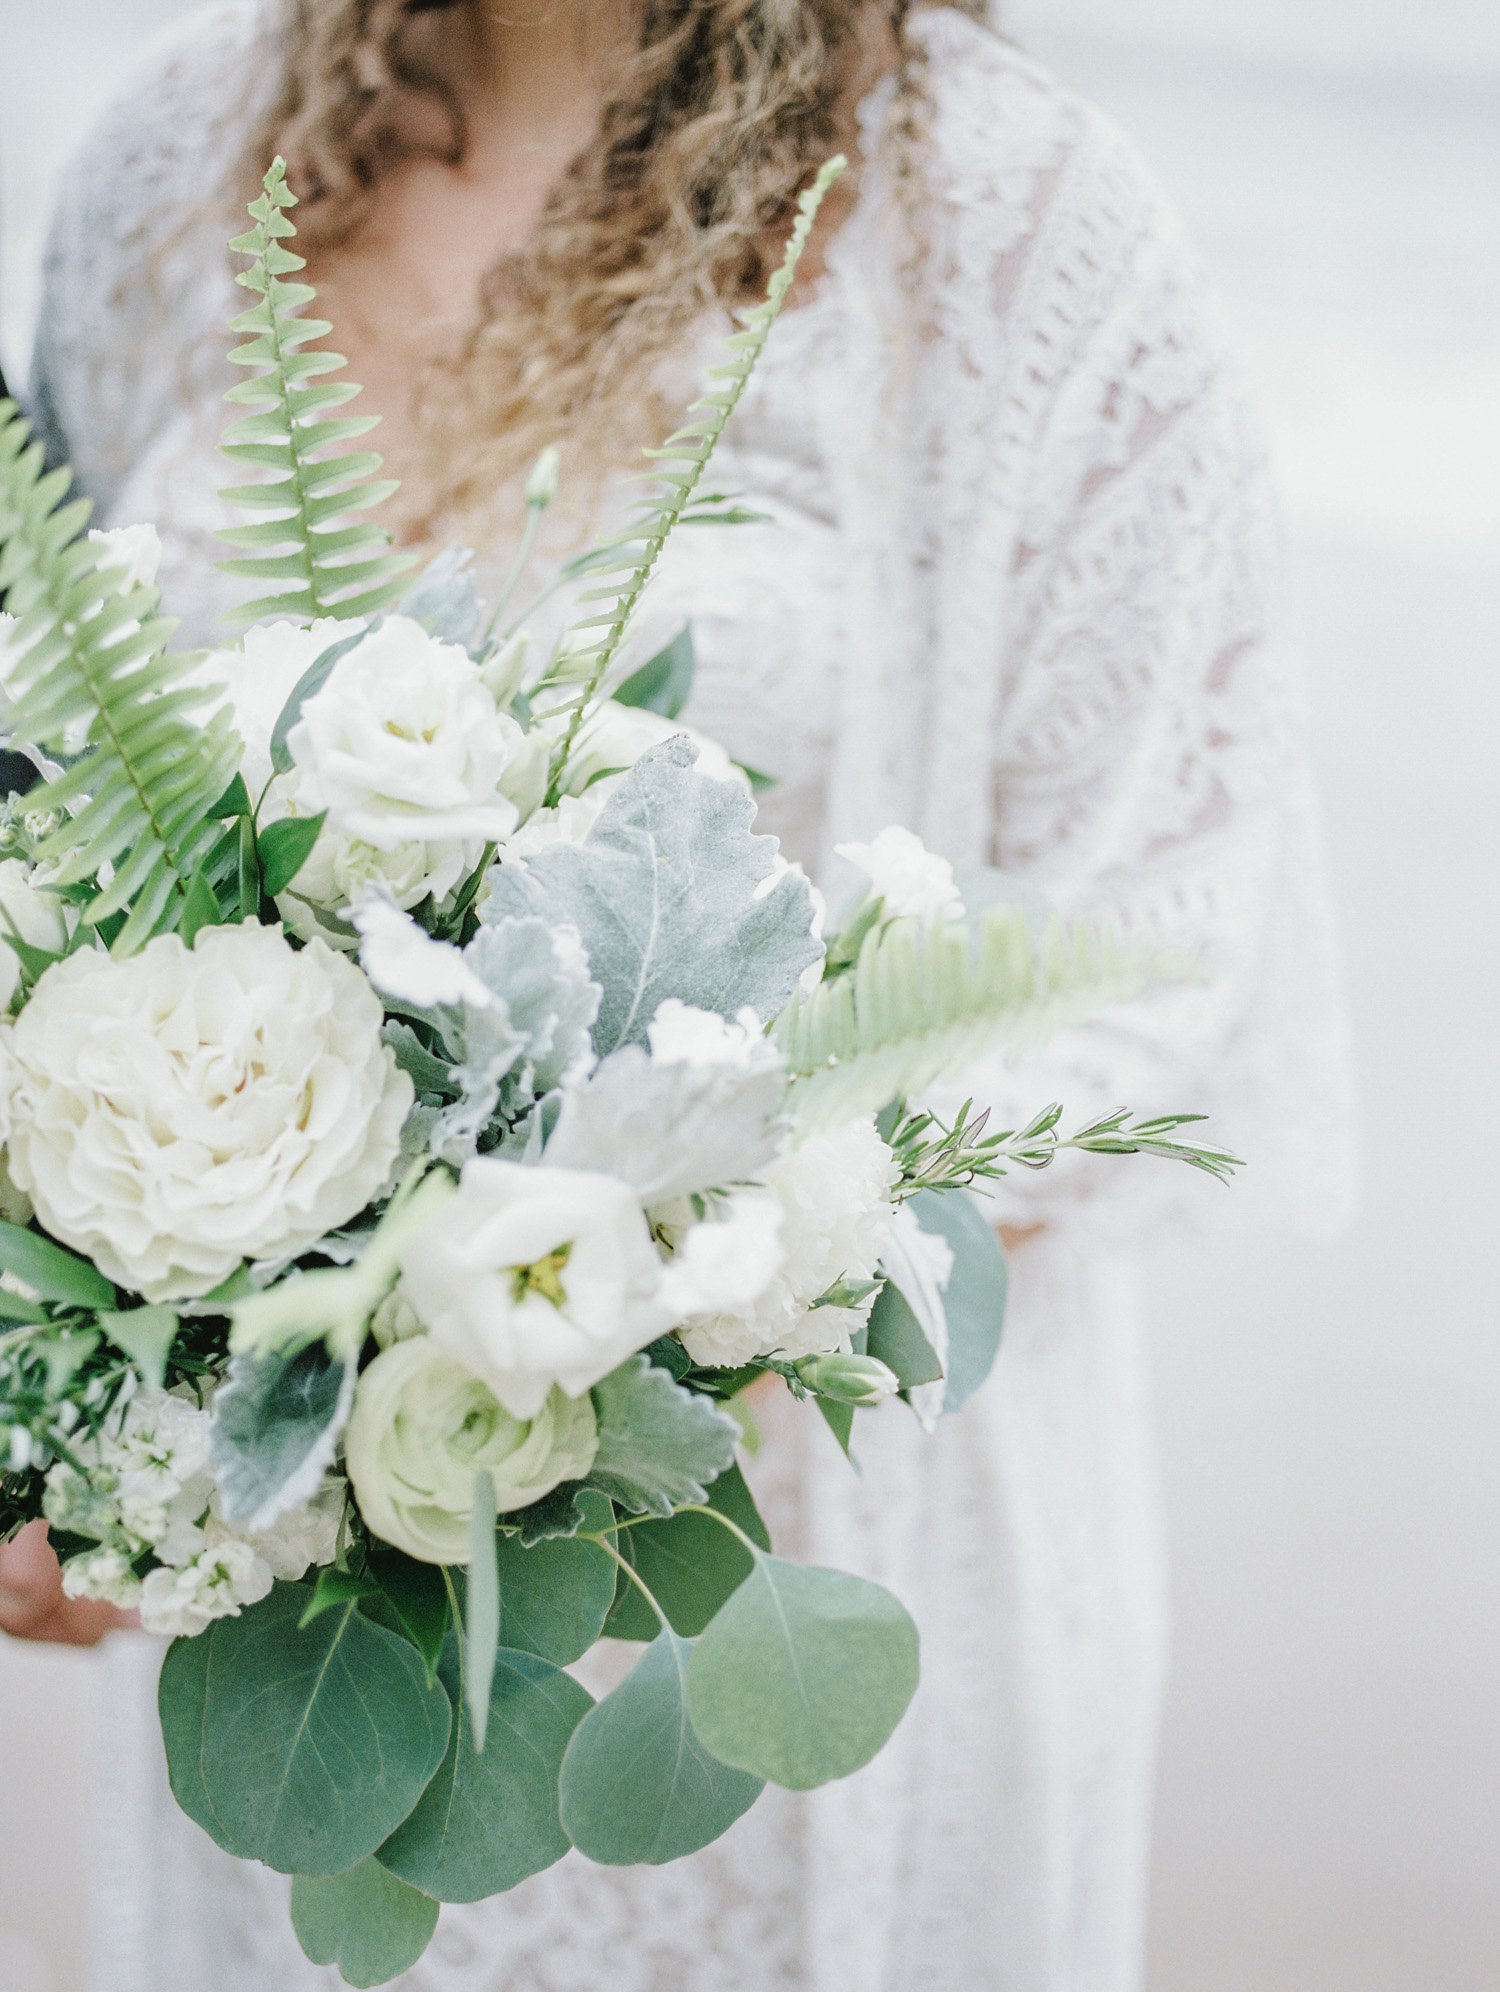 A wedding flower bouquet with white lisianthus, greenery, and ferns at a Lake Michigan wedding